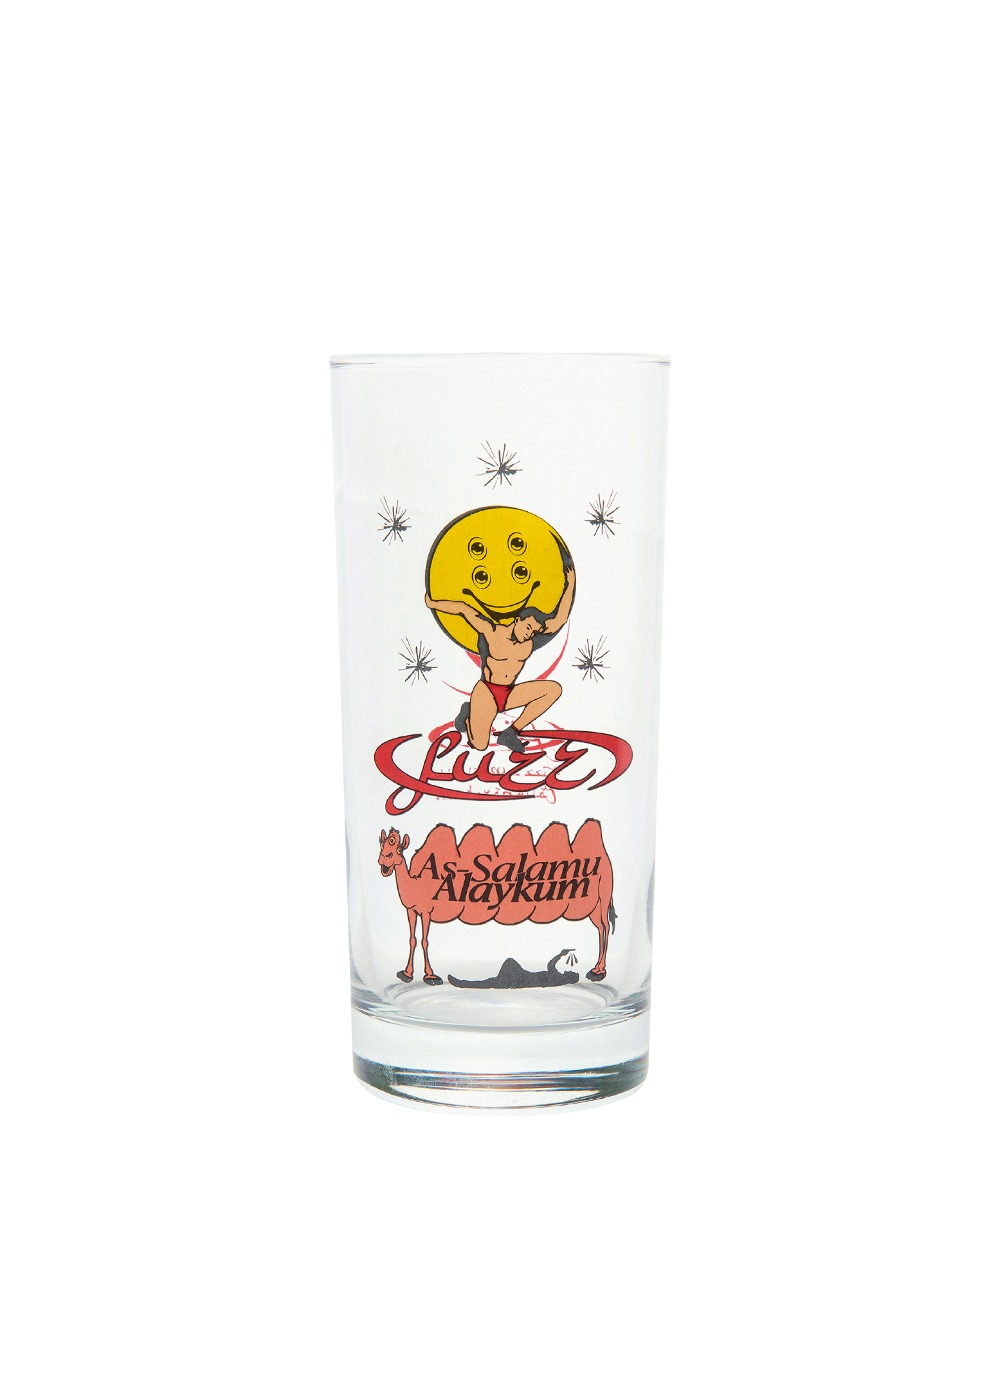 FUZZ X RAREBIRTH ASSALAMU ALAYKUM GLASS CUP clear